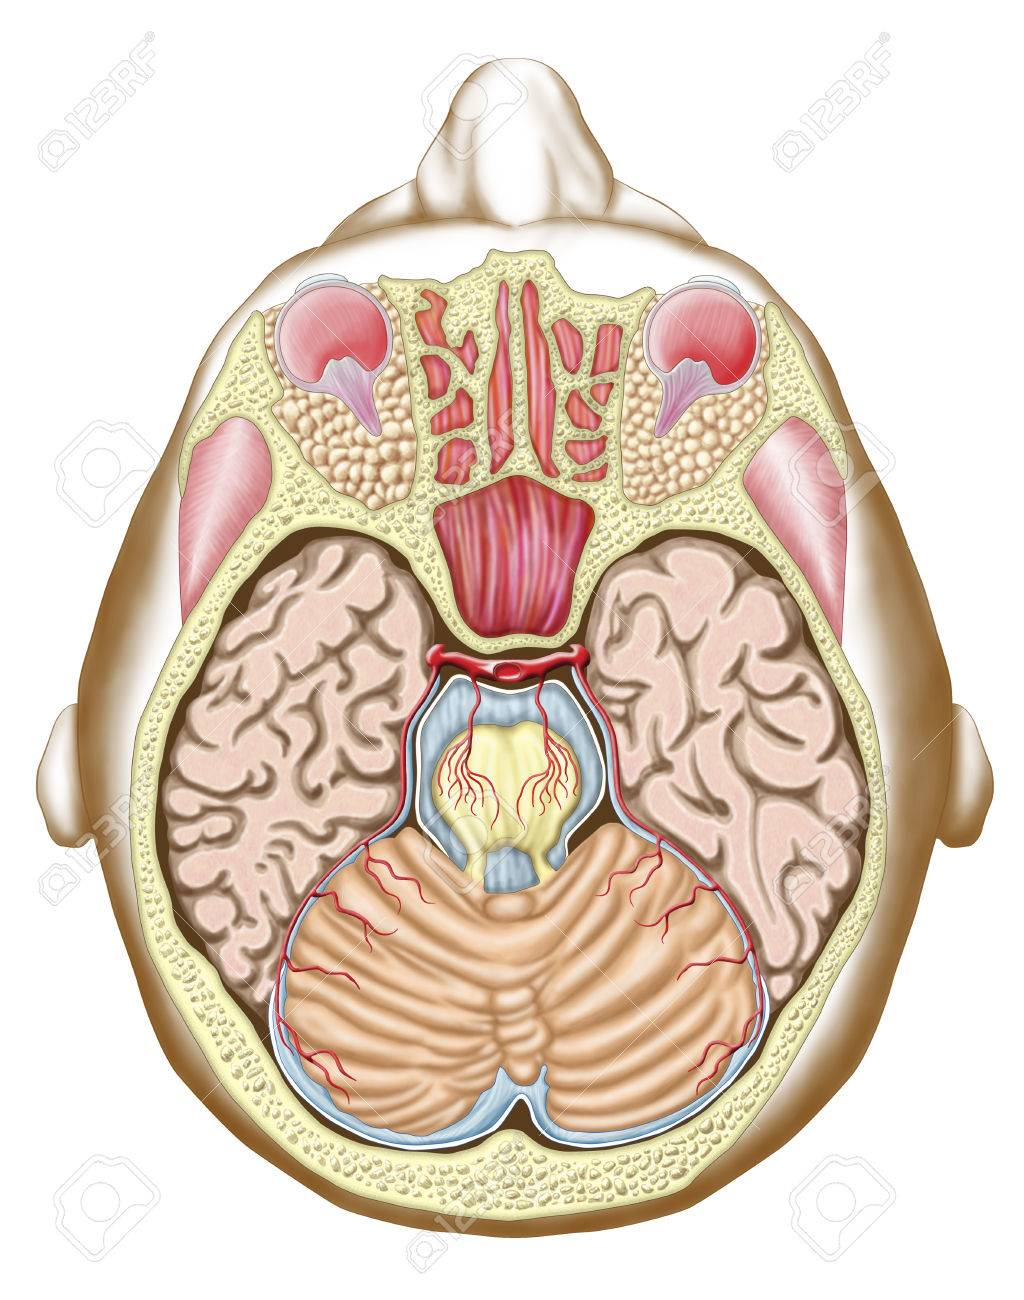 Transverse Section Of The Midbrain. Stock Photo, Picture And Royalty ...